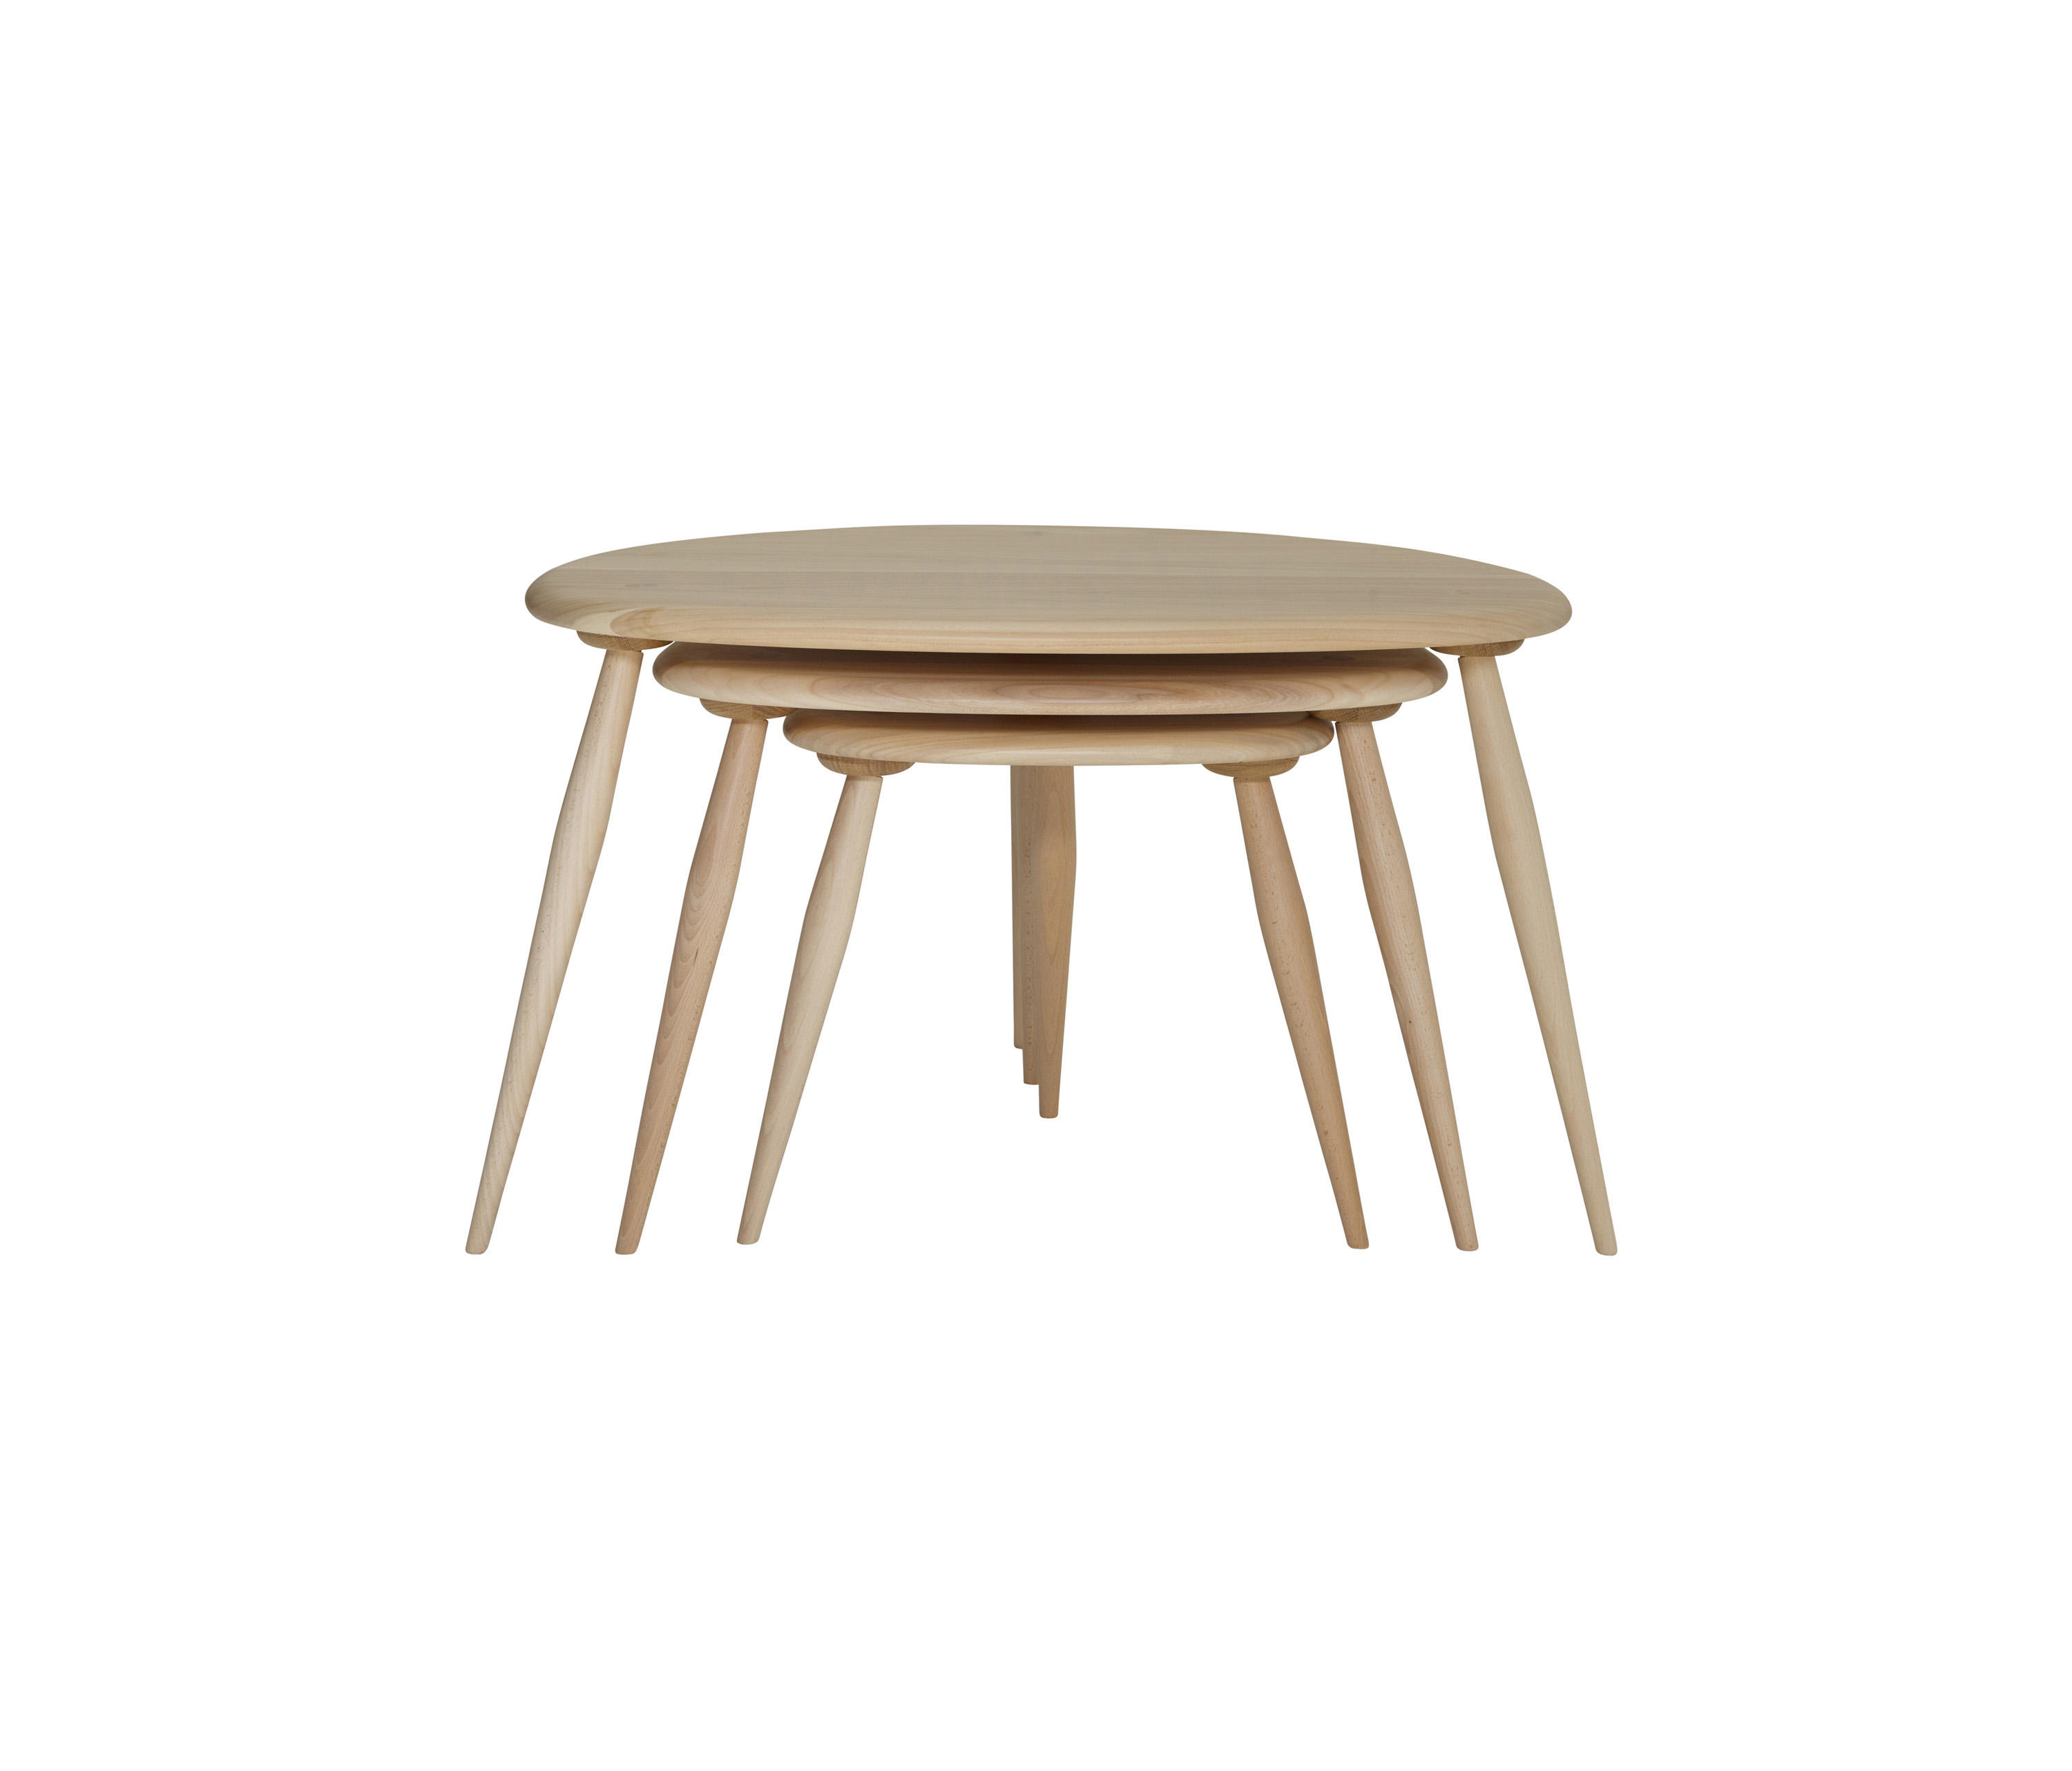 Originals nest of tables side tables from ercol architonic originals nest of tables by ercol side tables watchthetrailerfo